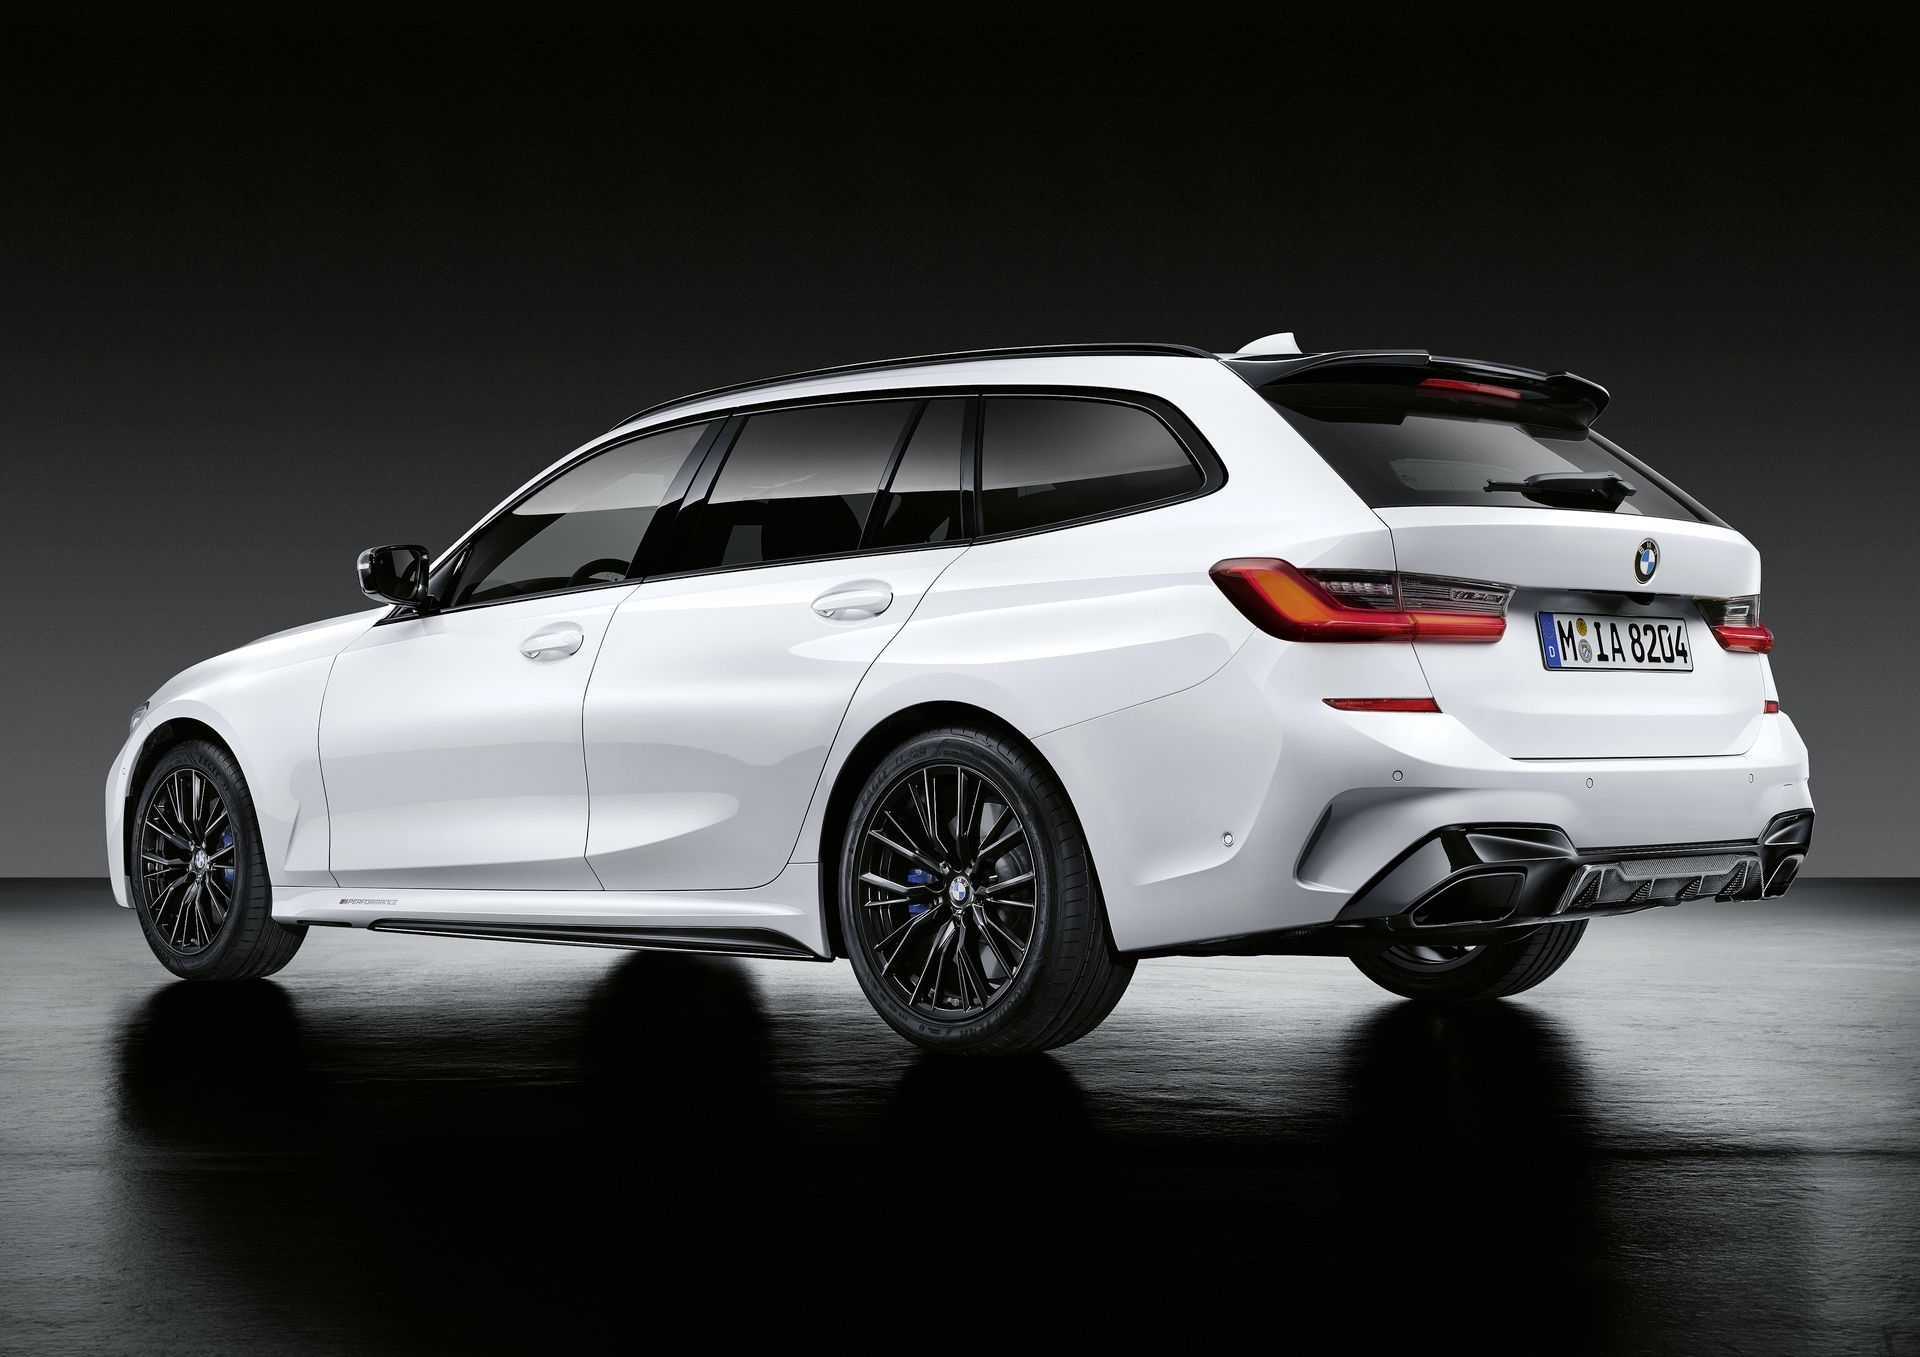 Bmw 8 Series Gran Coupe 3 Series Touring And X1 Lci Gets New M Performance Parts Avec Images Voiture Sportive Voiture Sportif